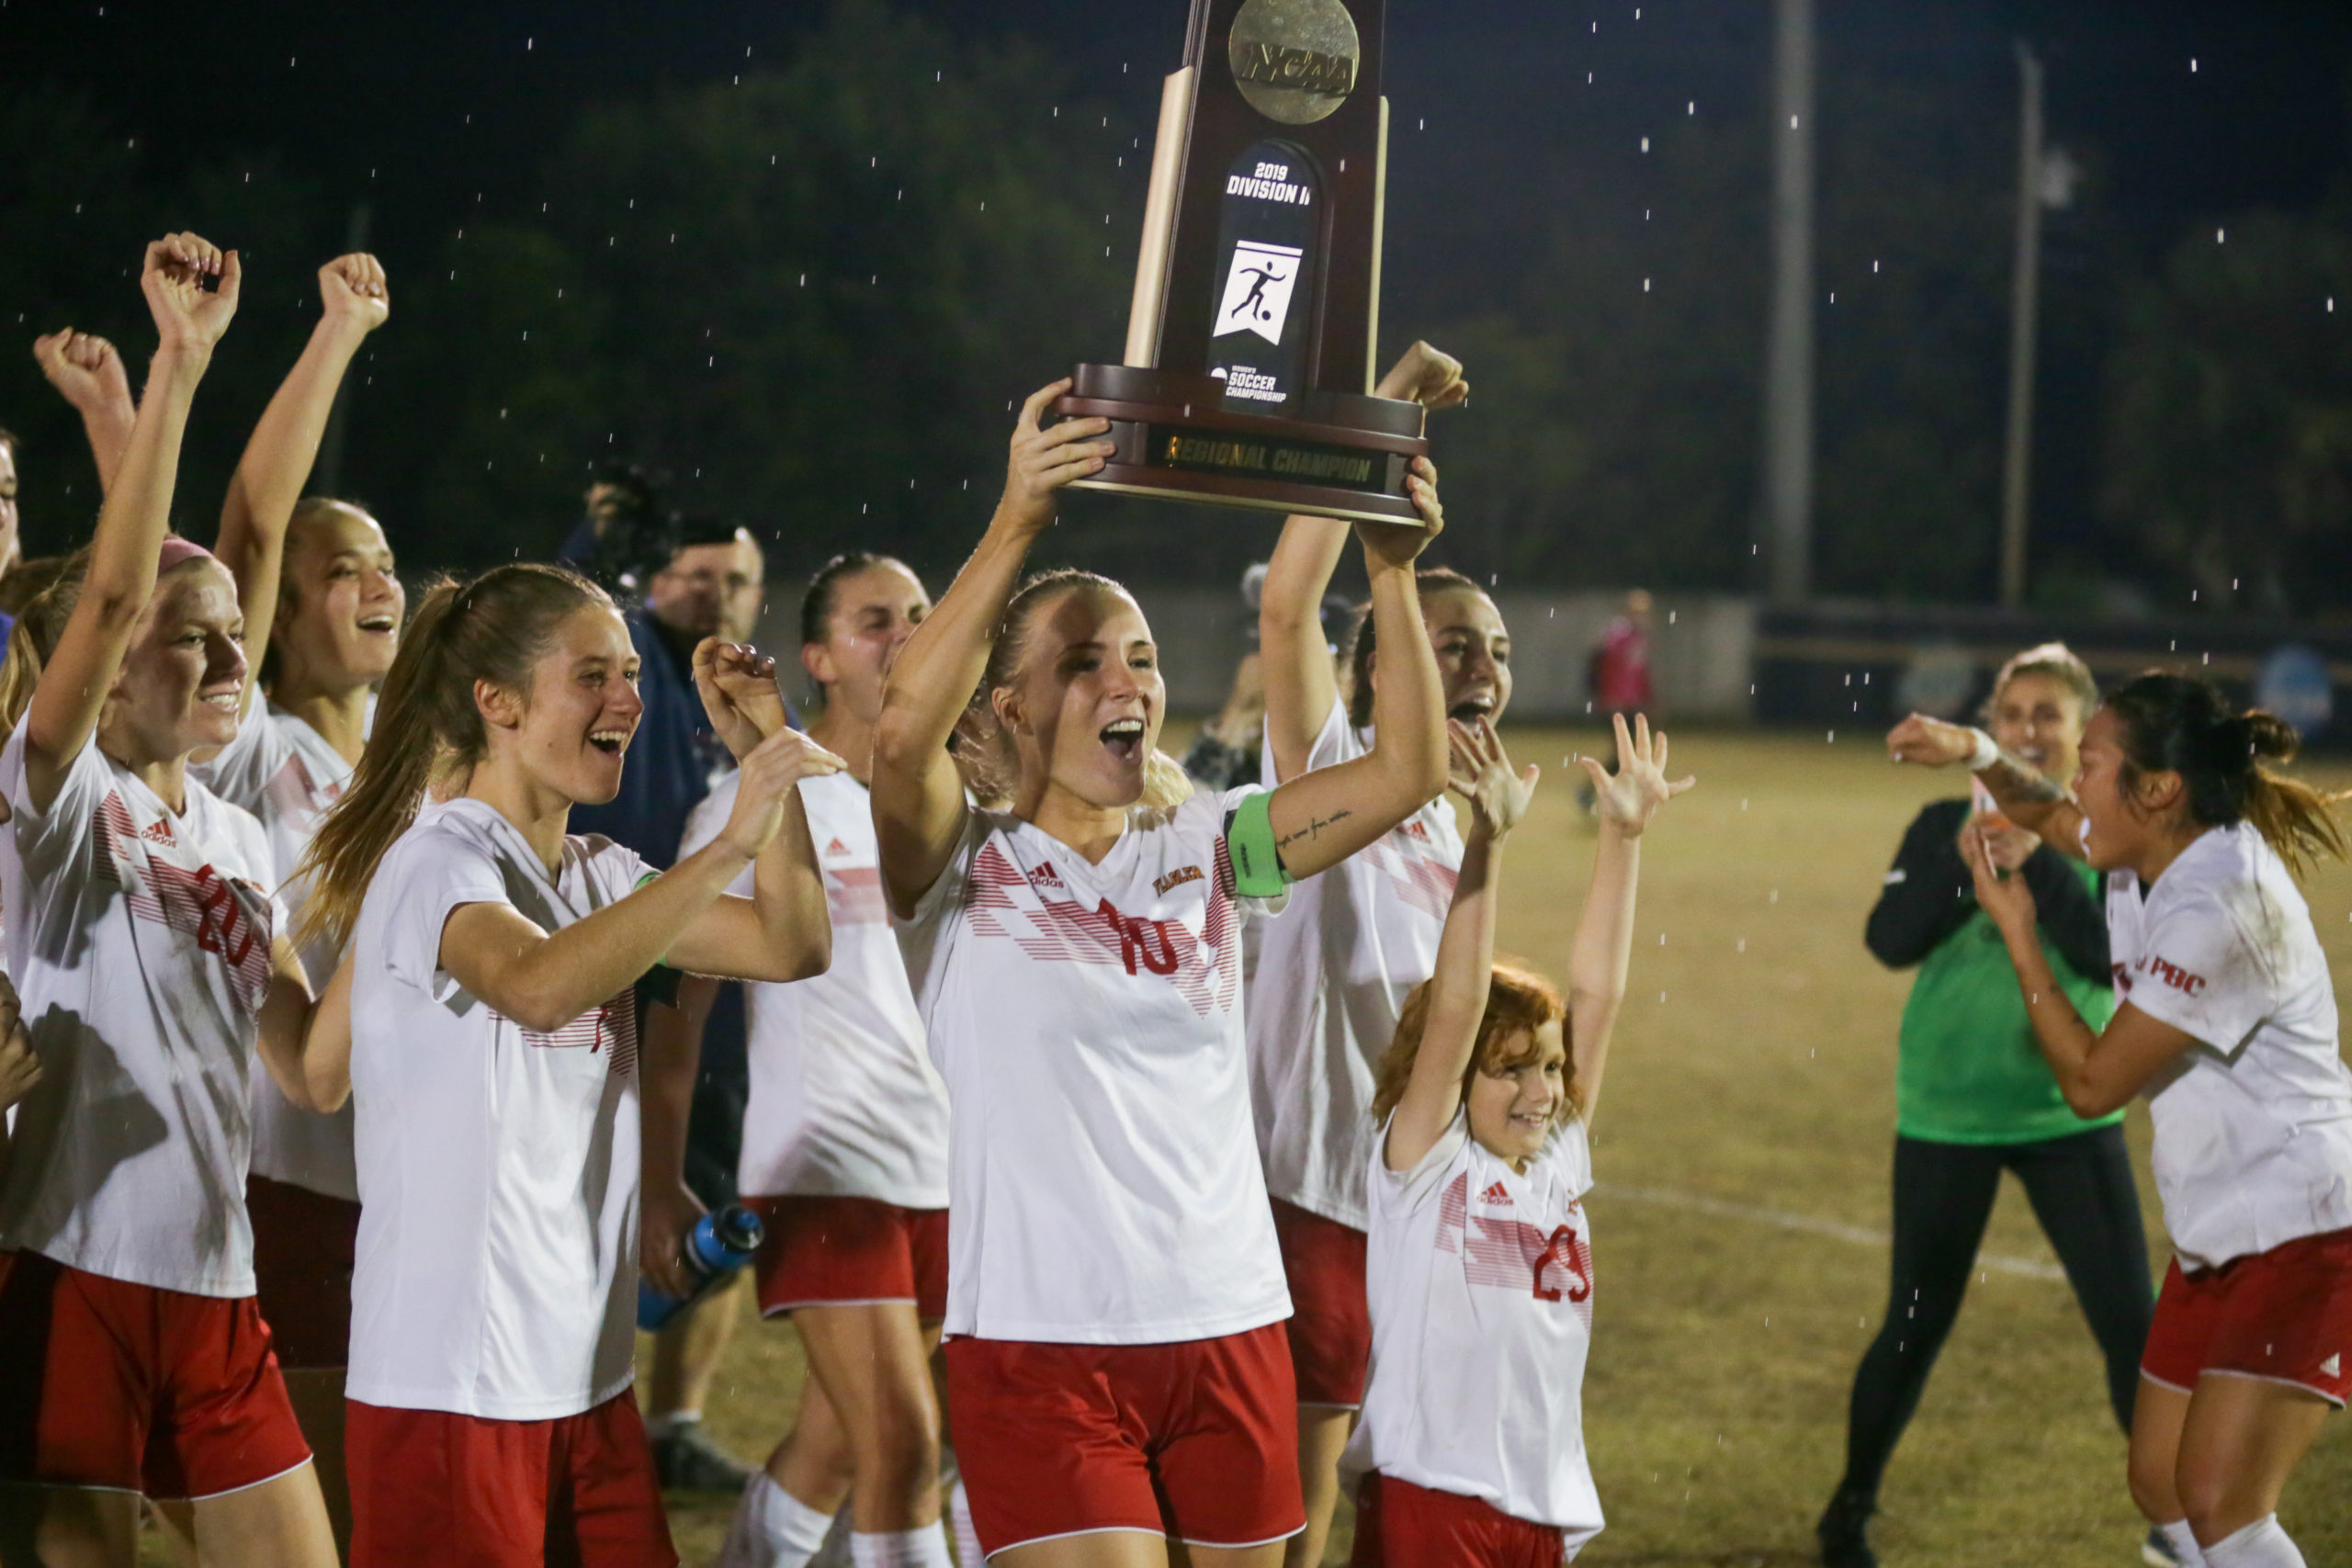 PHOTOS: Flagler College women's soccer team's dream season in images